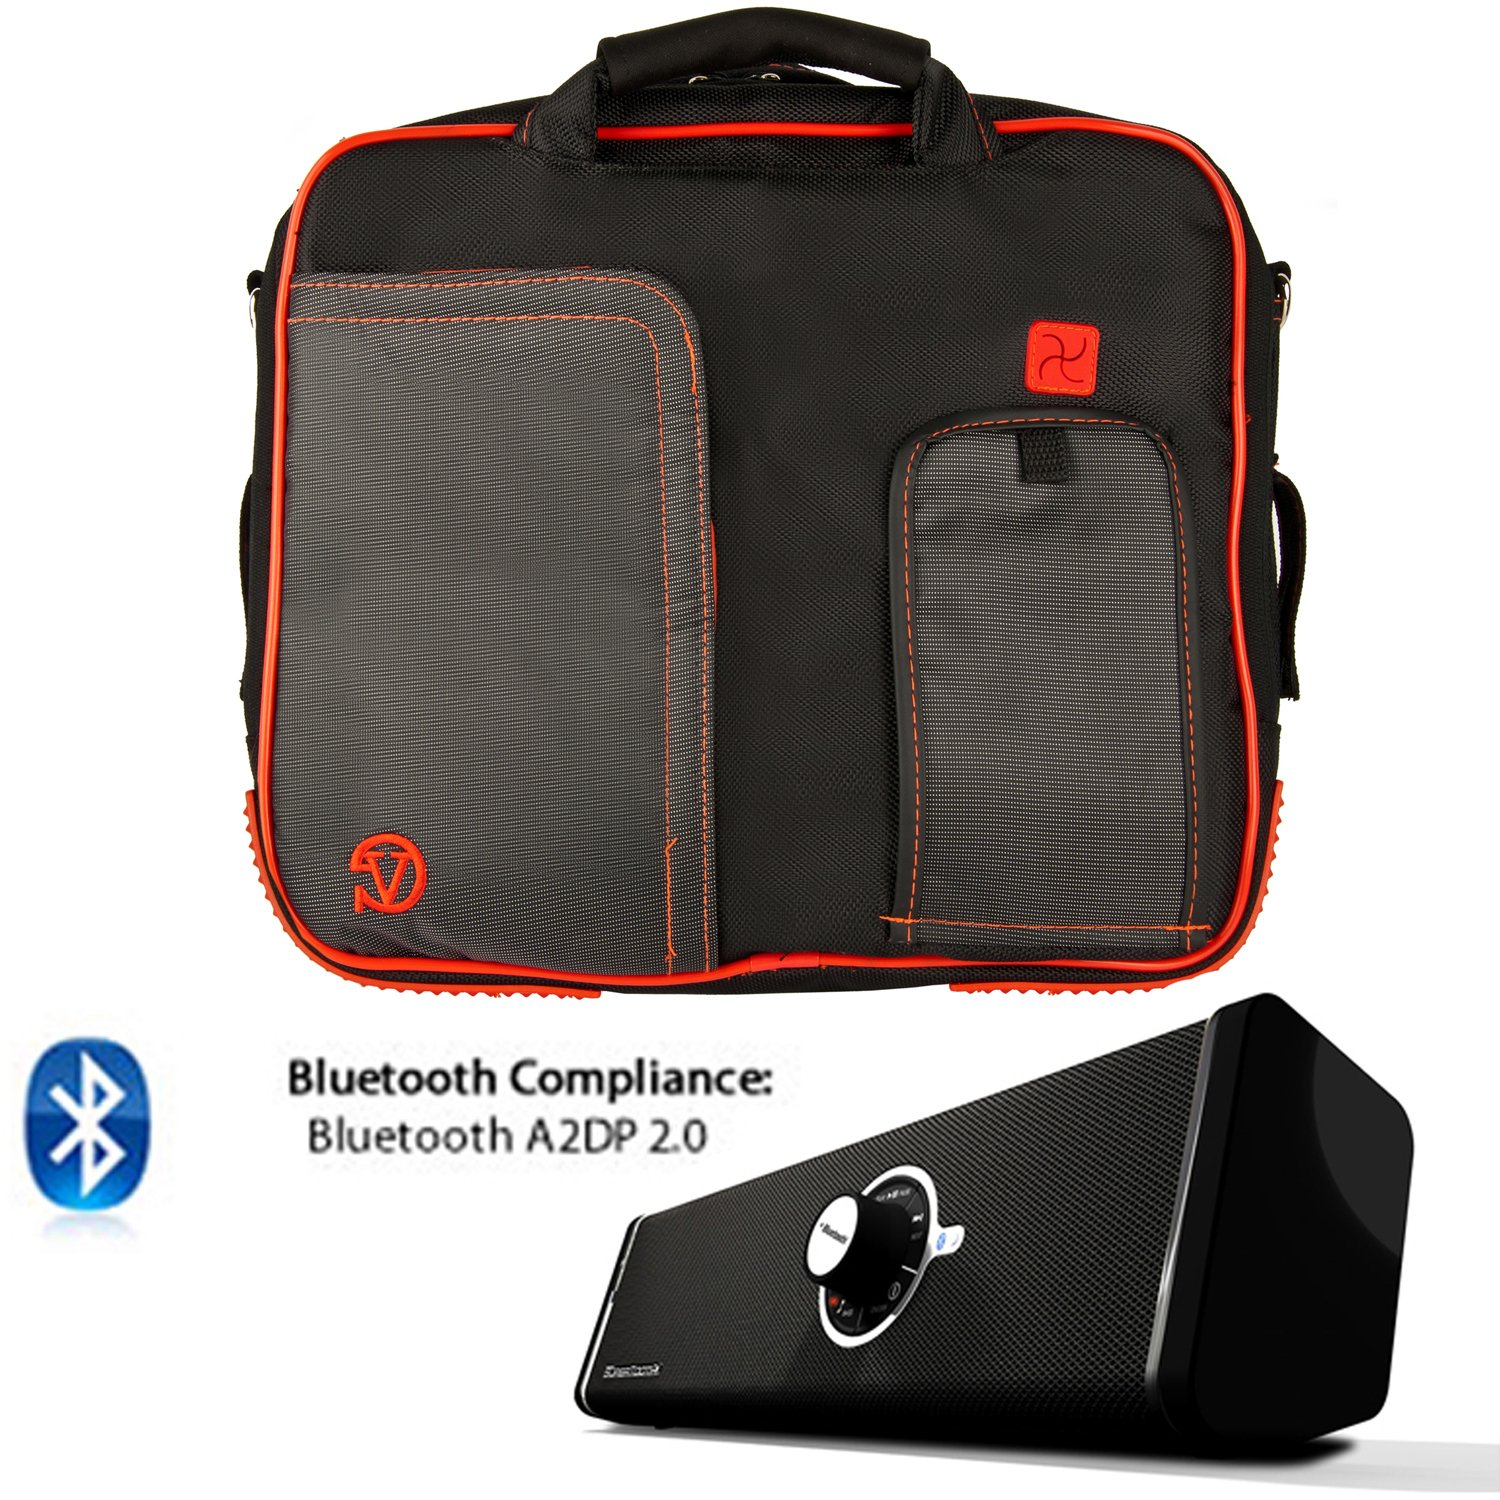 PINDAR Messenger Shoulder Carrying Bag Durable Case (Red Trim) For Samsung Galaxy Note 10.1 / Samsung Galaxy Tab 2 10.1